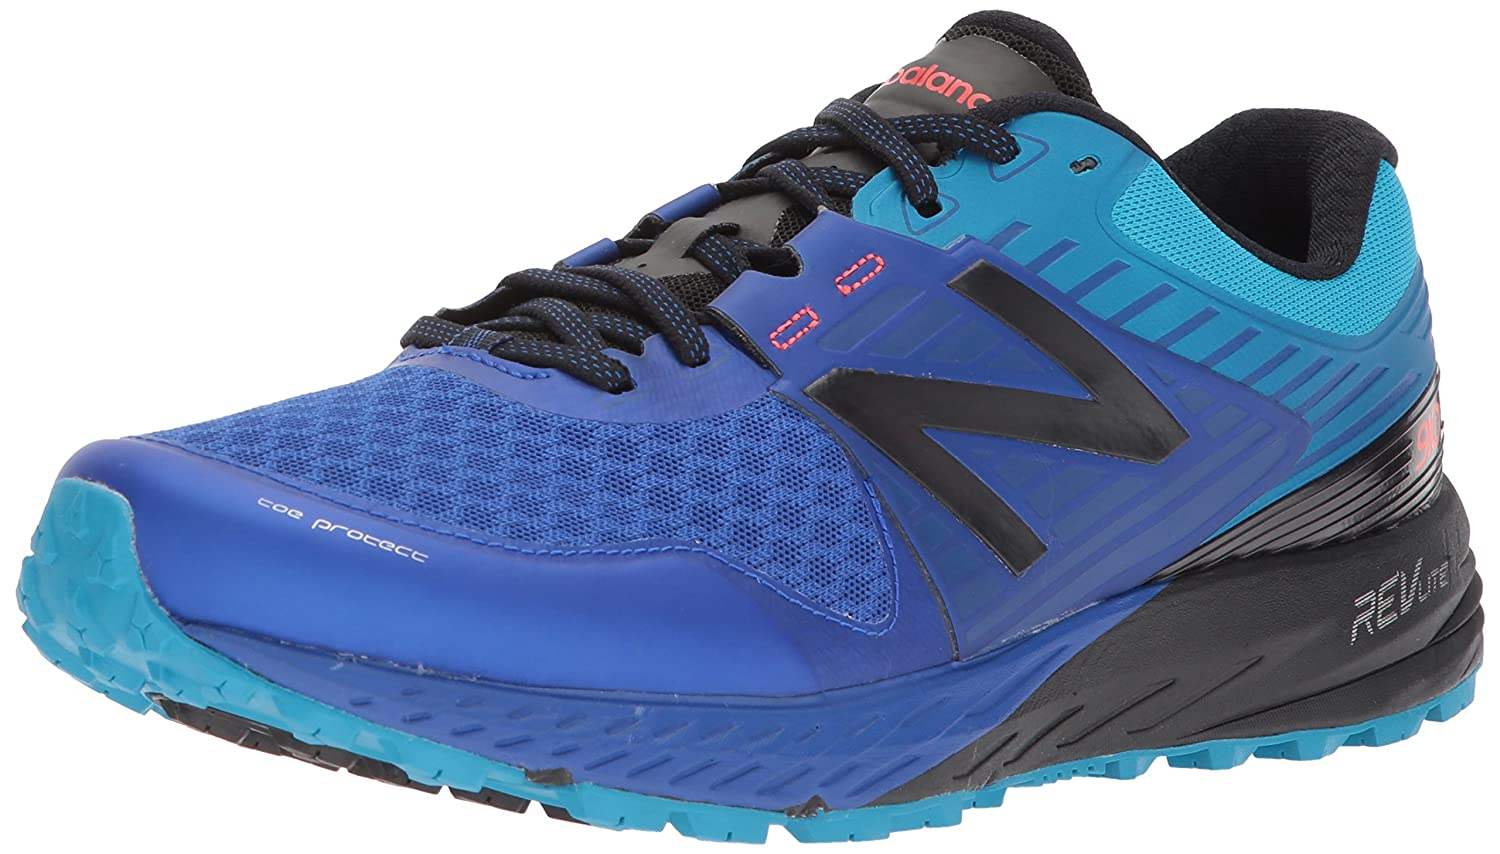 New Balance Men's 910v4 Running Shoe B06XRTS4KY 13 2E US|Pacific/Maldives